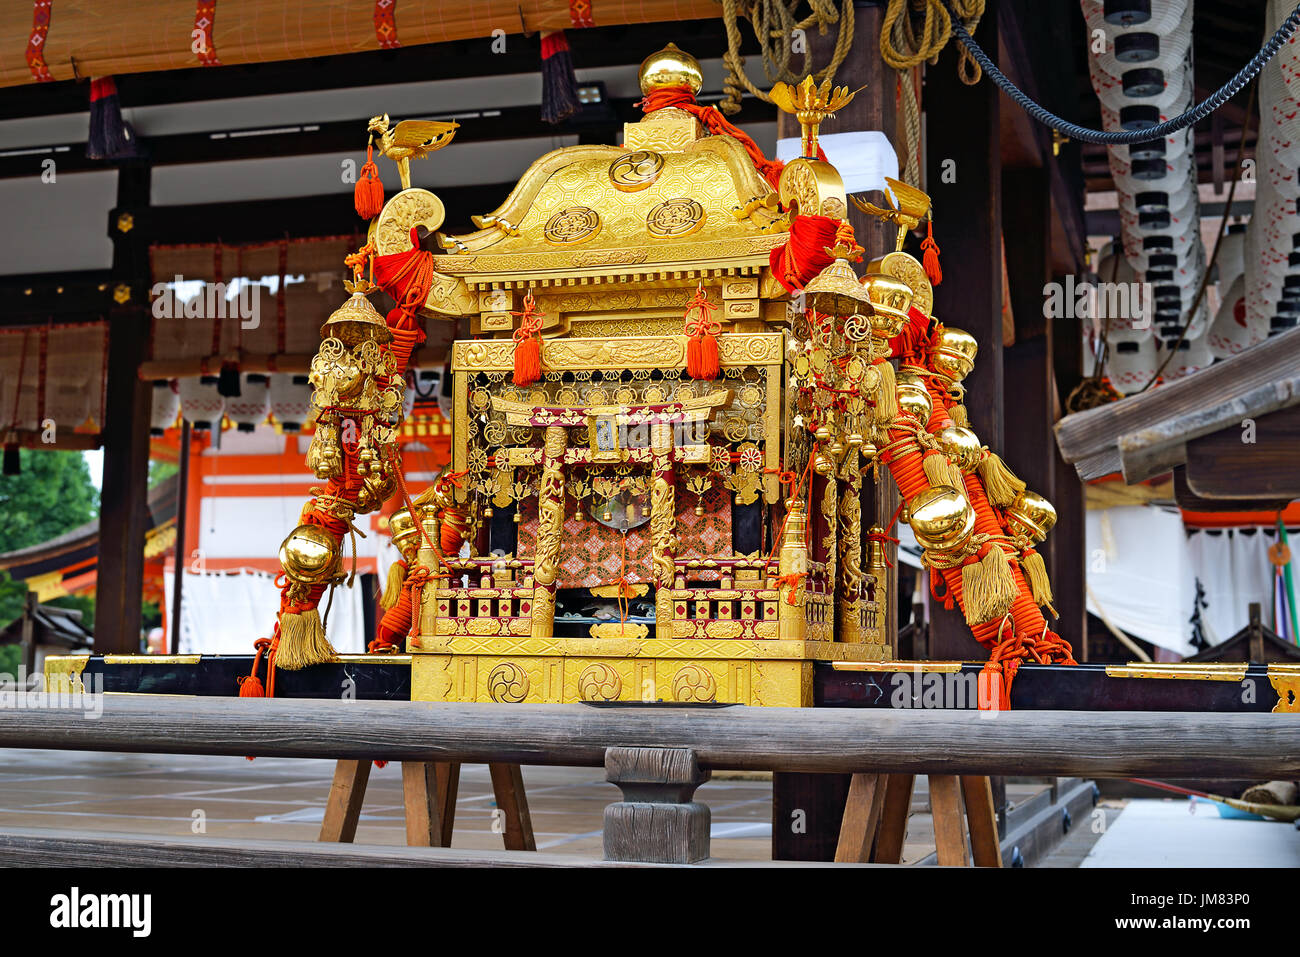 The mikoshi--a portable shrine--for Yasaka Jinja is on display as a part of the Gion Festival in Kyoto, Japan. - Stock Image